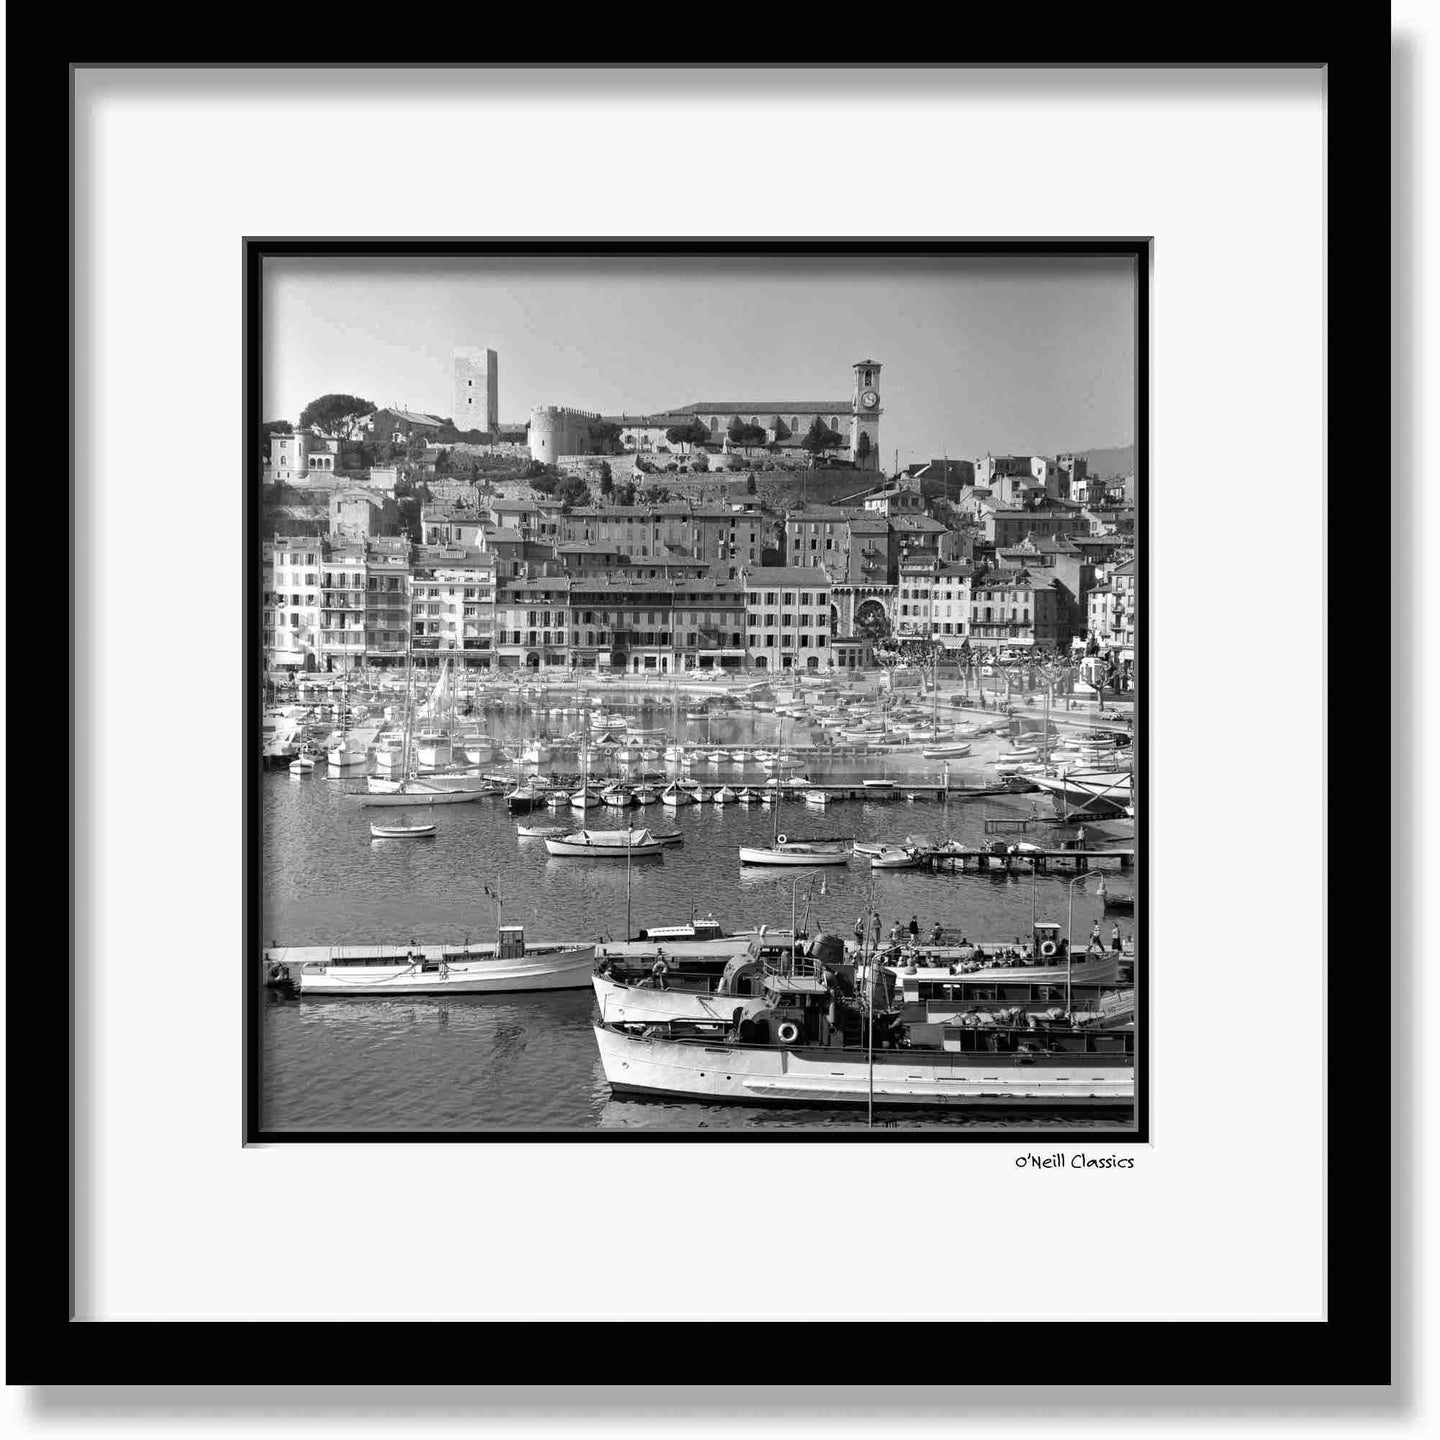 Harbour at Cannes 1958 - Framed B&W photograph